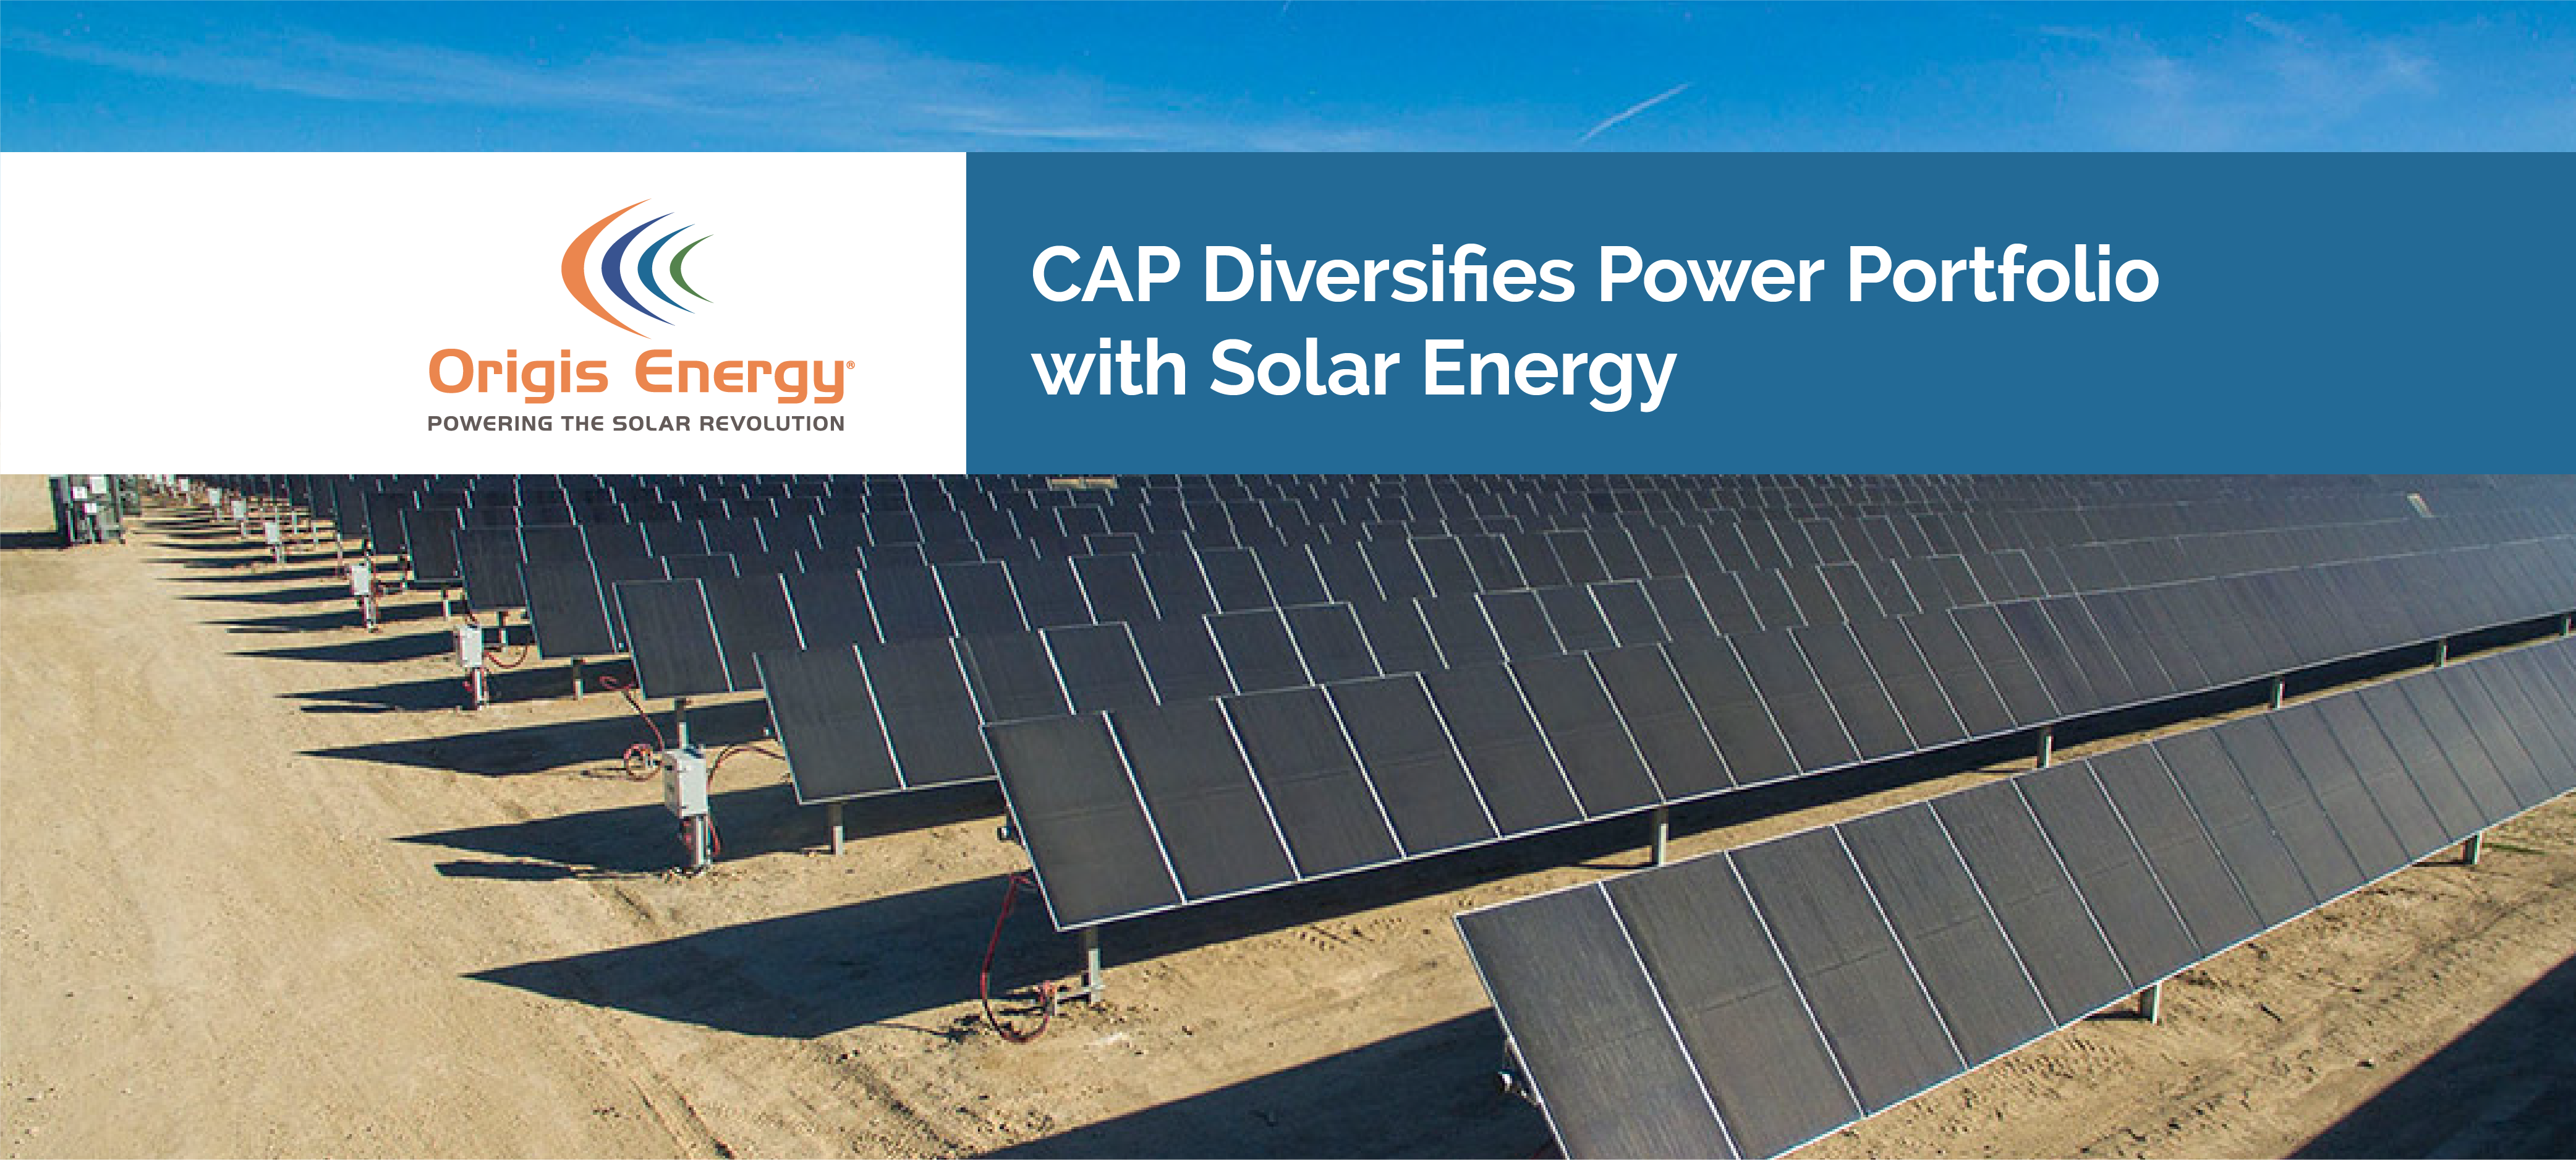 CAP Diversifies Power Portfolio with Solar Energy